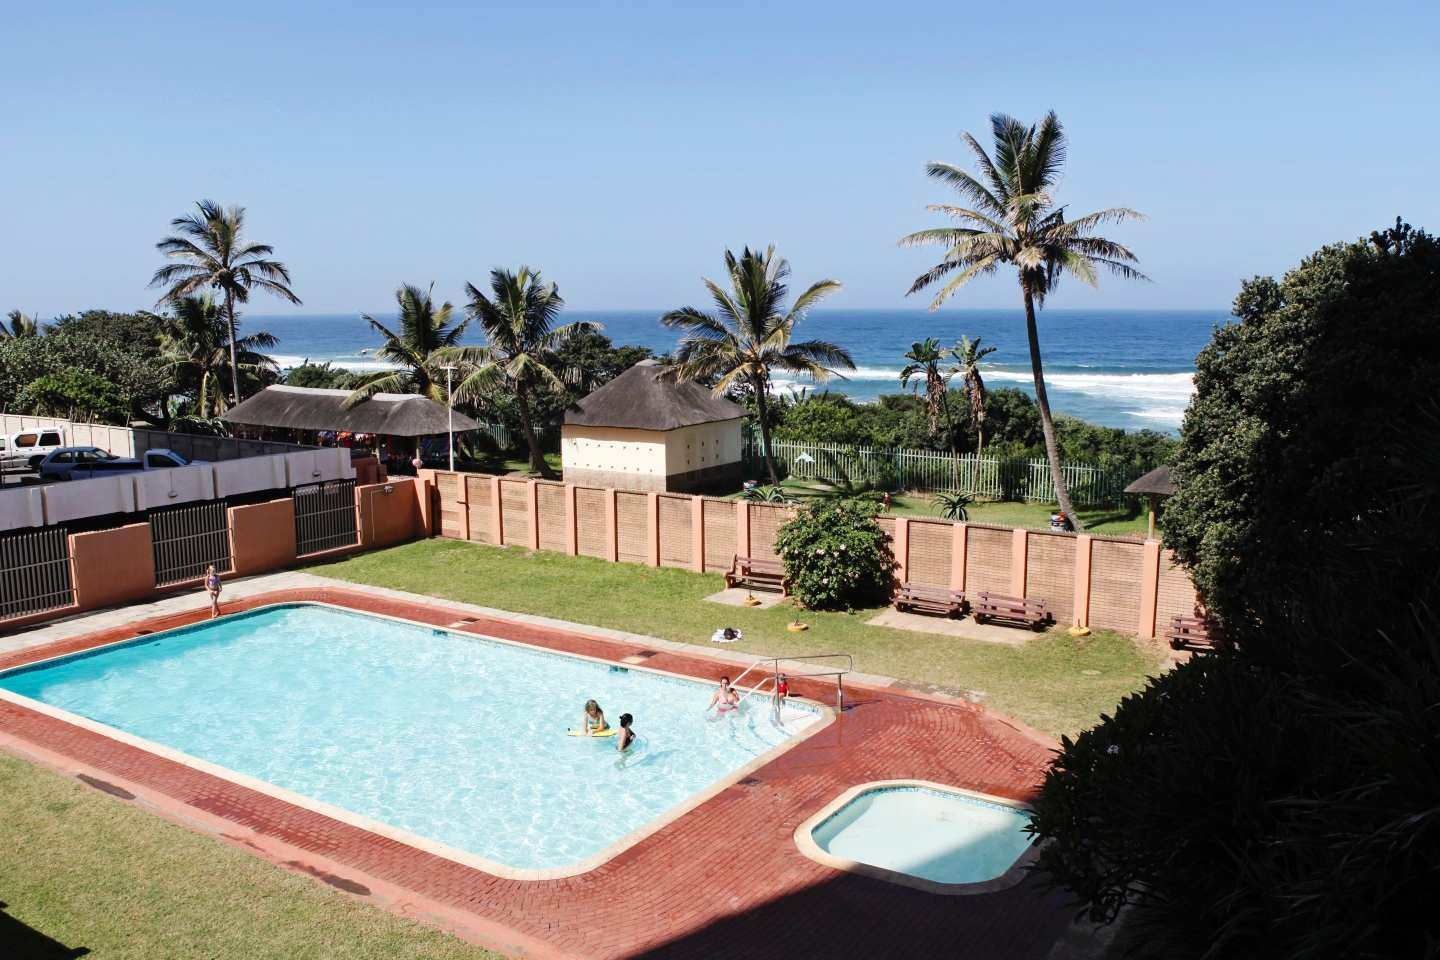 8 Family Stays In Durban